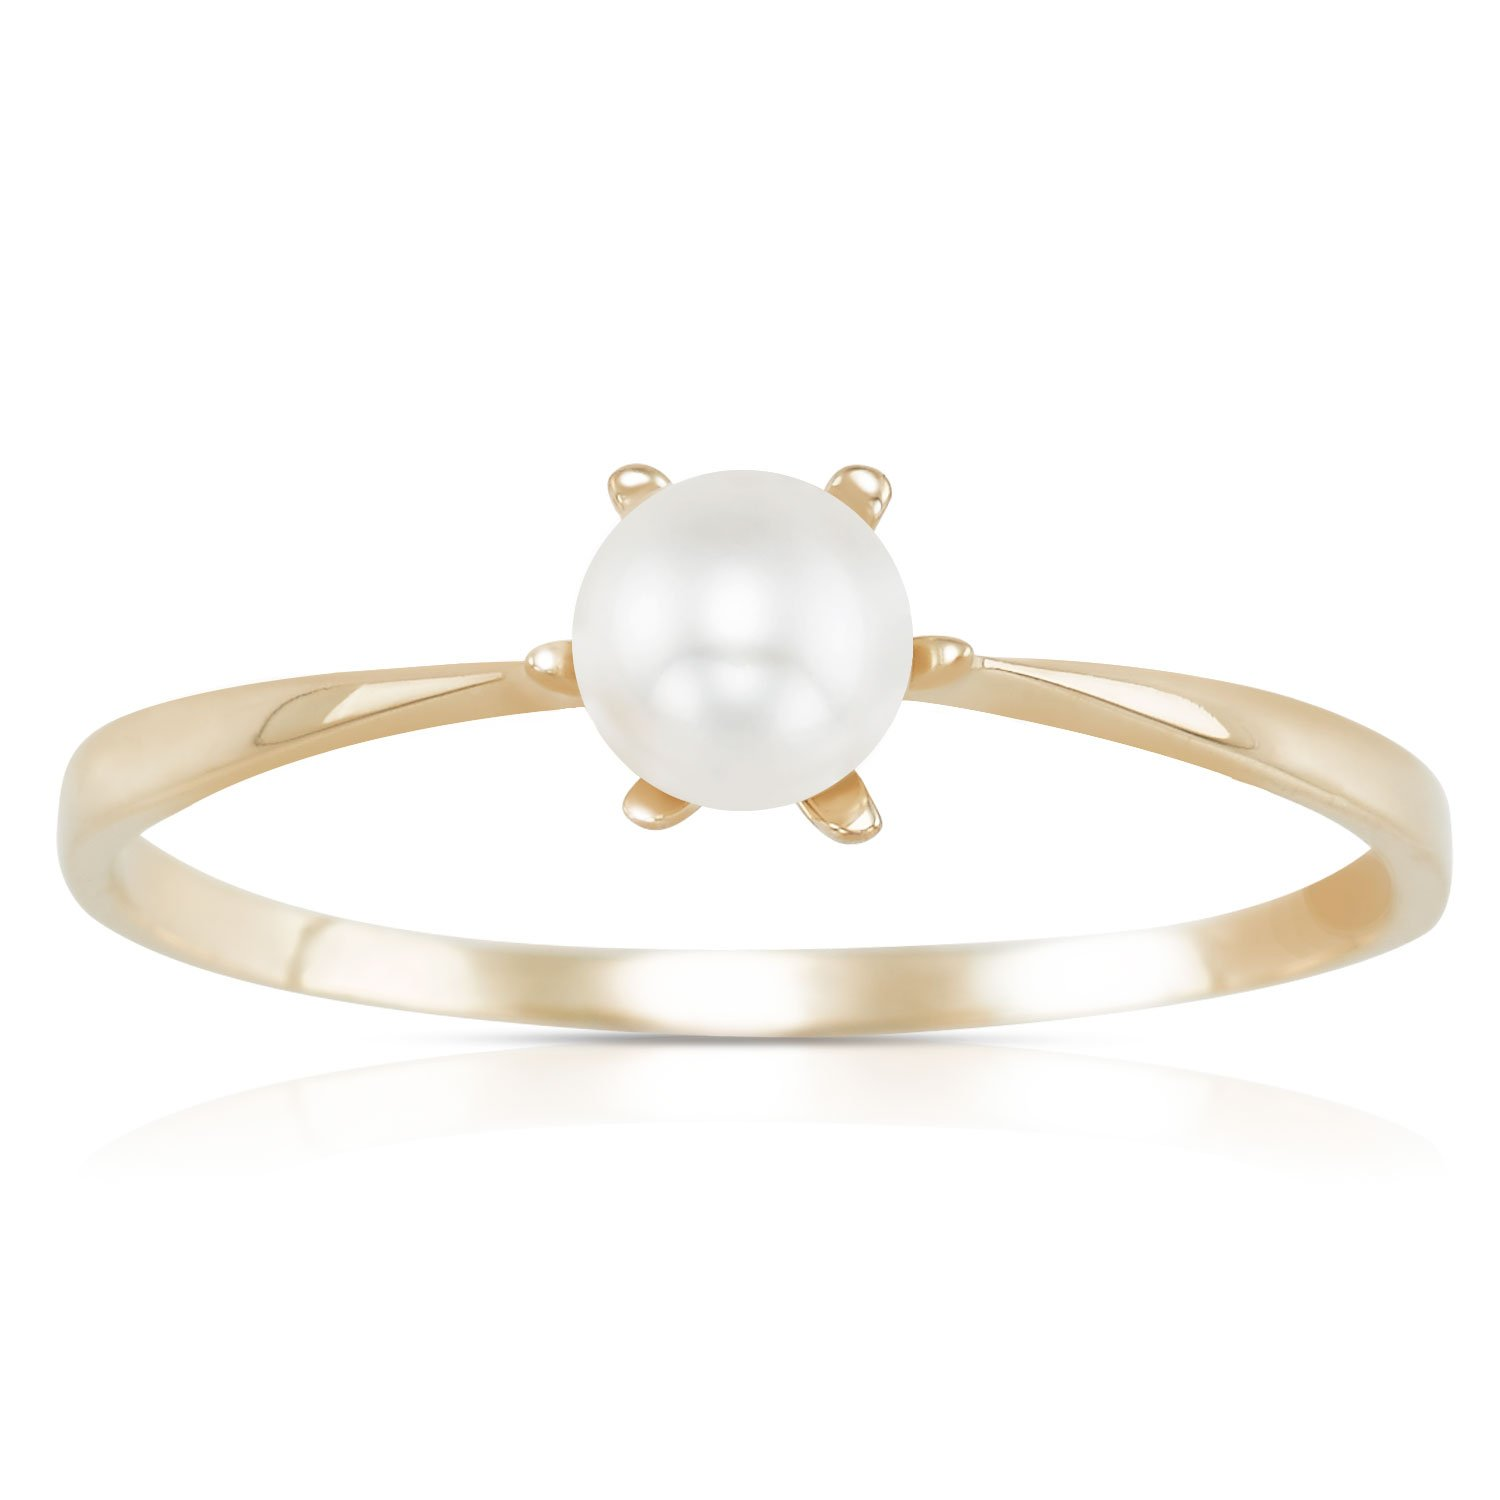 14K Yellow Gold Thin Petite Six Prong Synthetic Pearl Center Stackable Ring For Women and Girls (7)